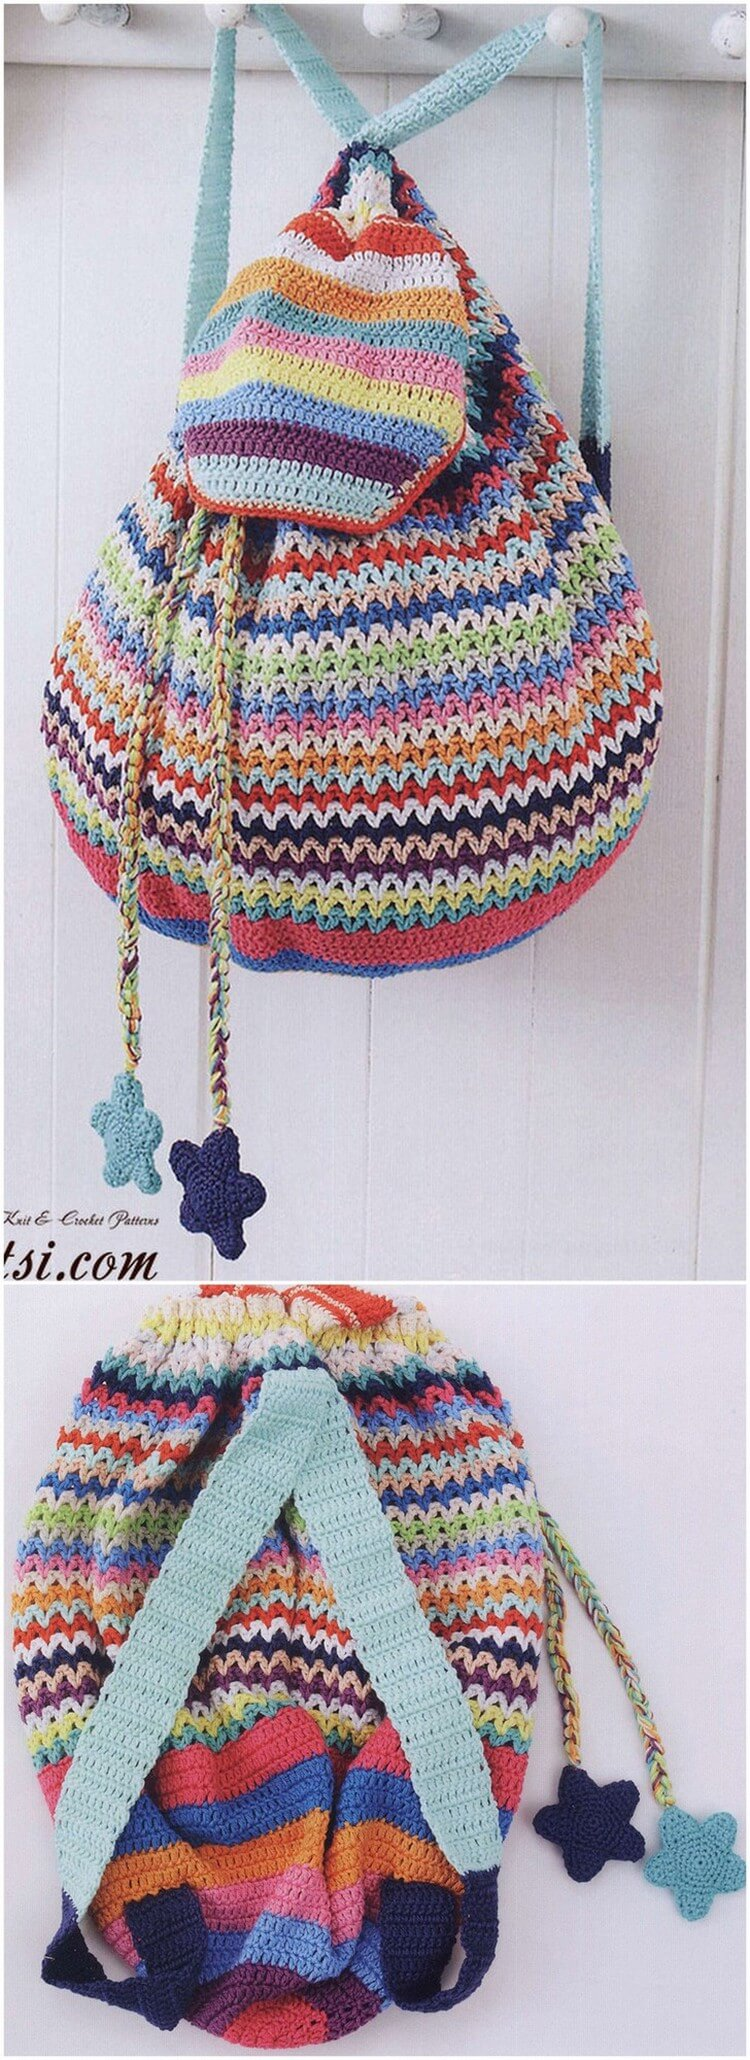 Crochet Backpack Pattern (63)